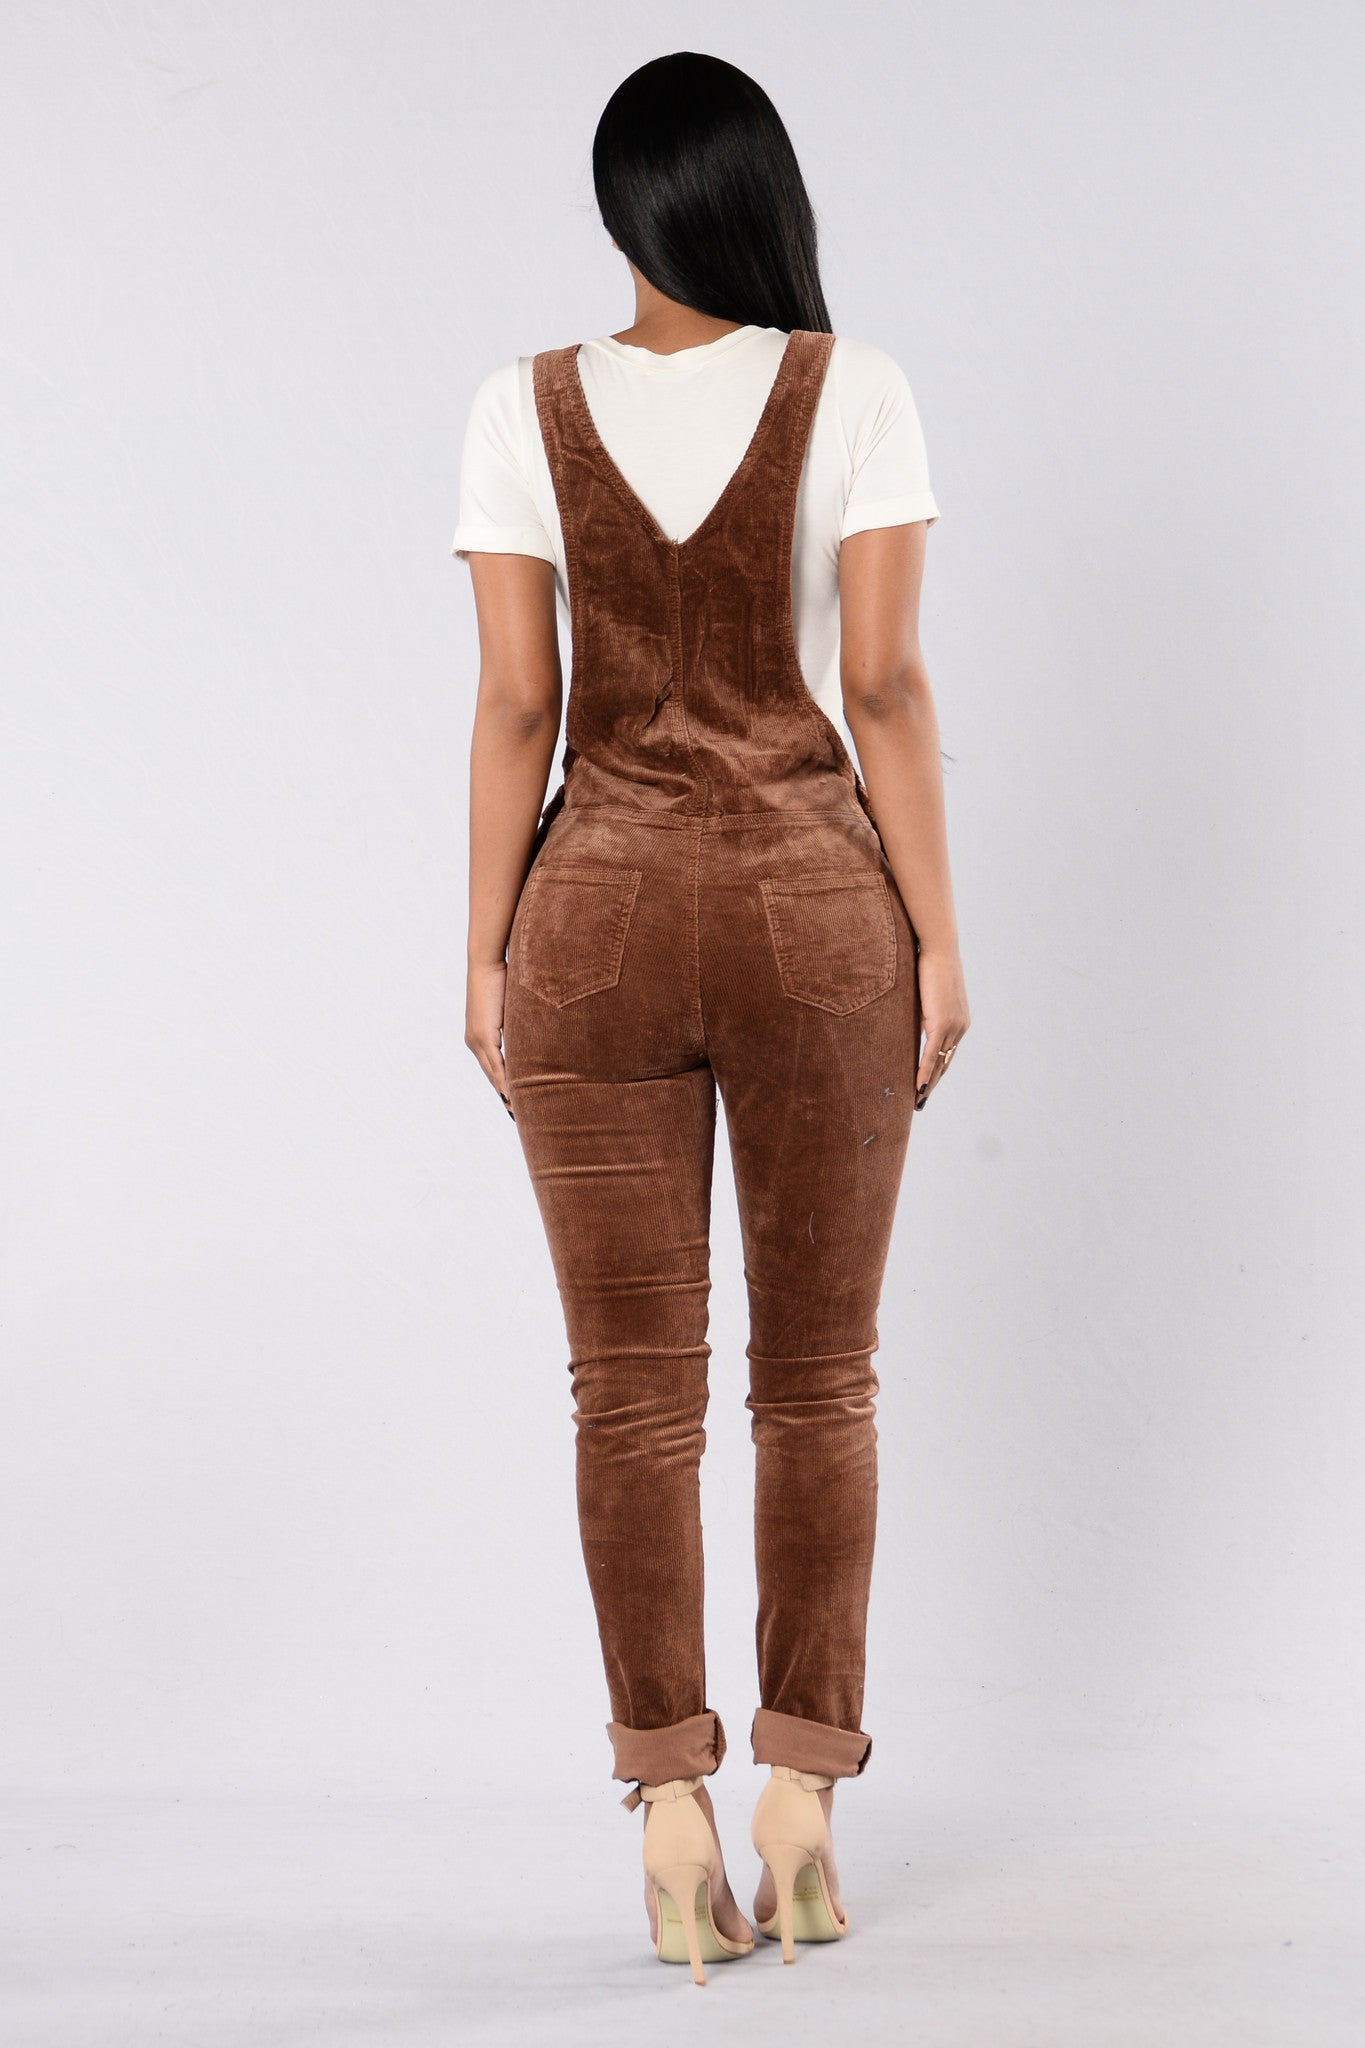 d77ebeeb583 Corduroy Joy Overalls - Brown